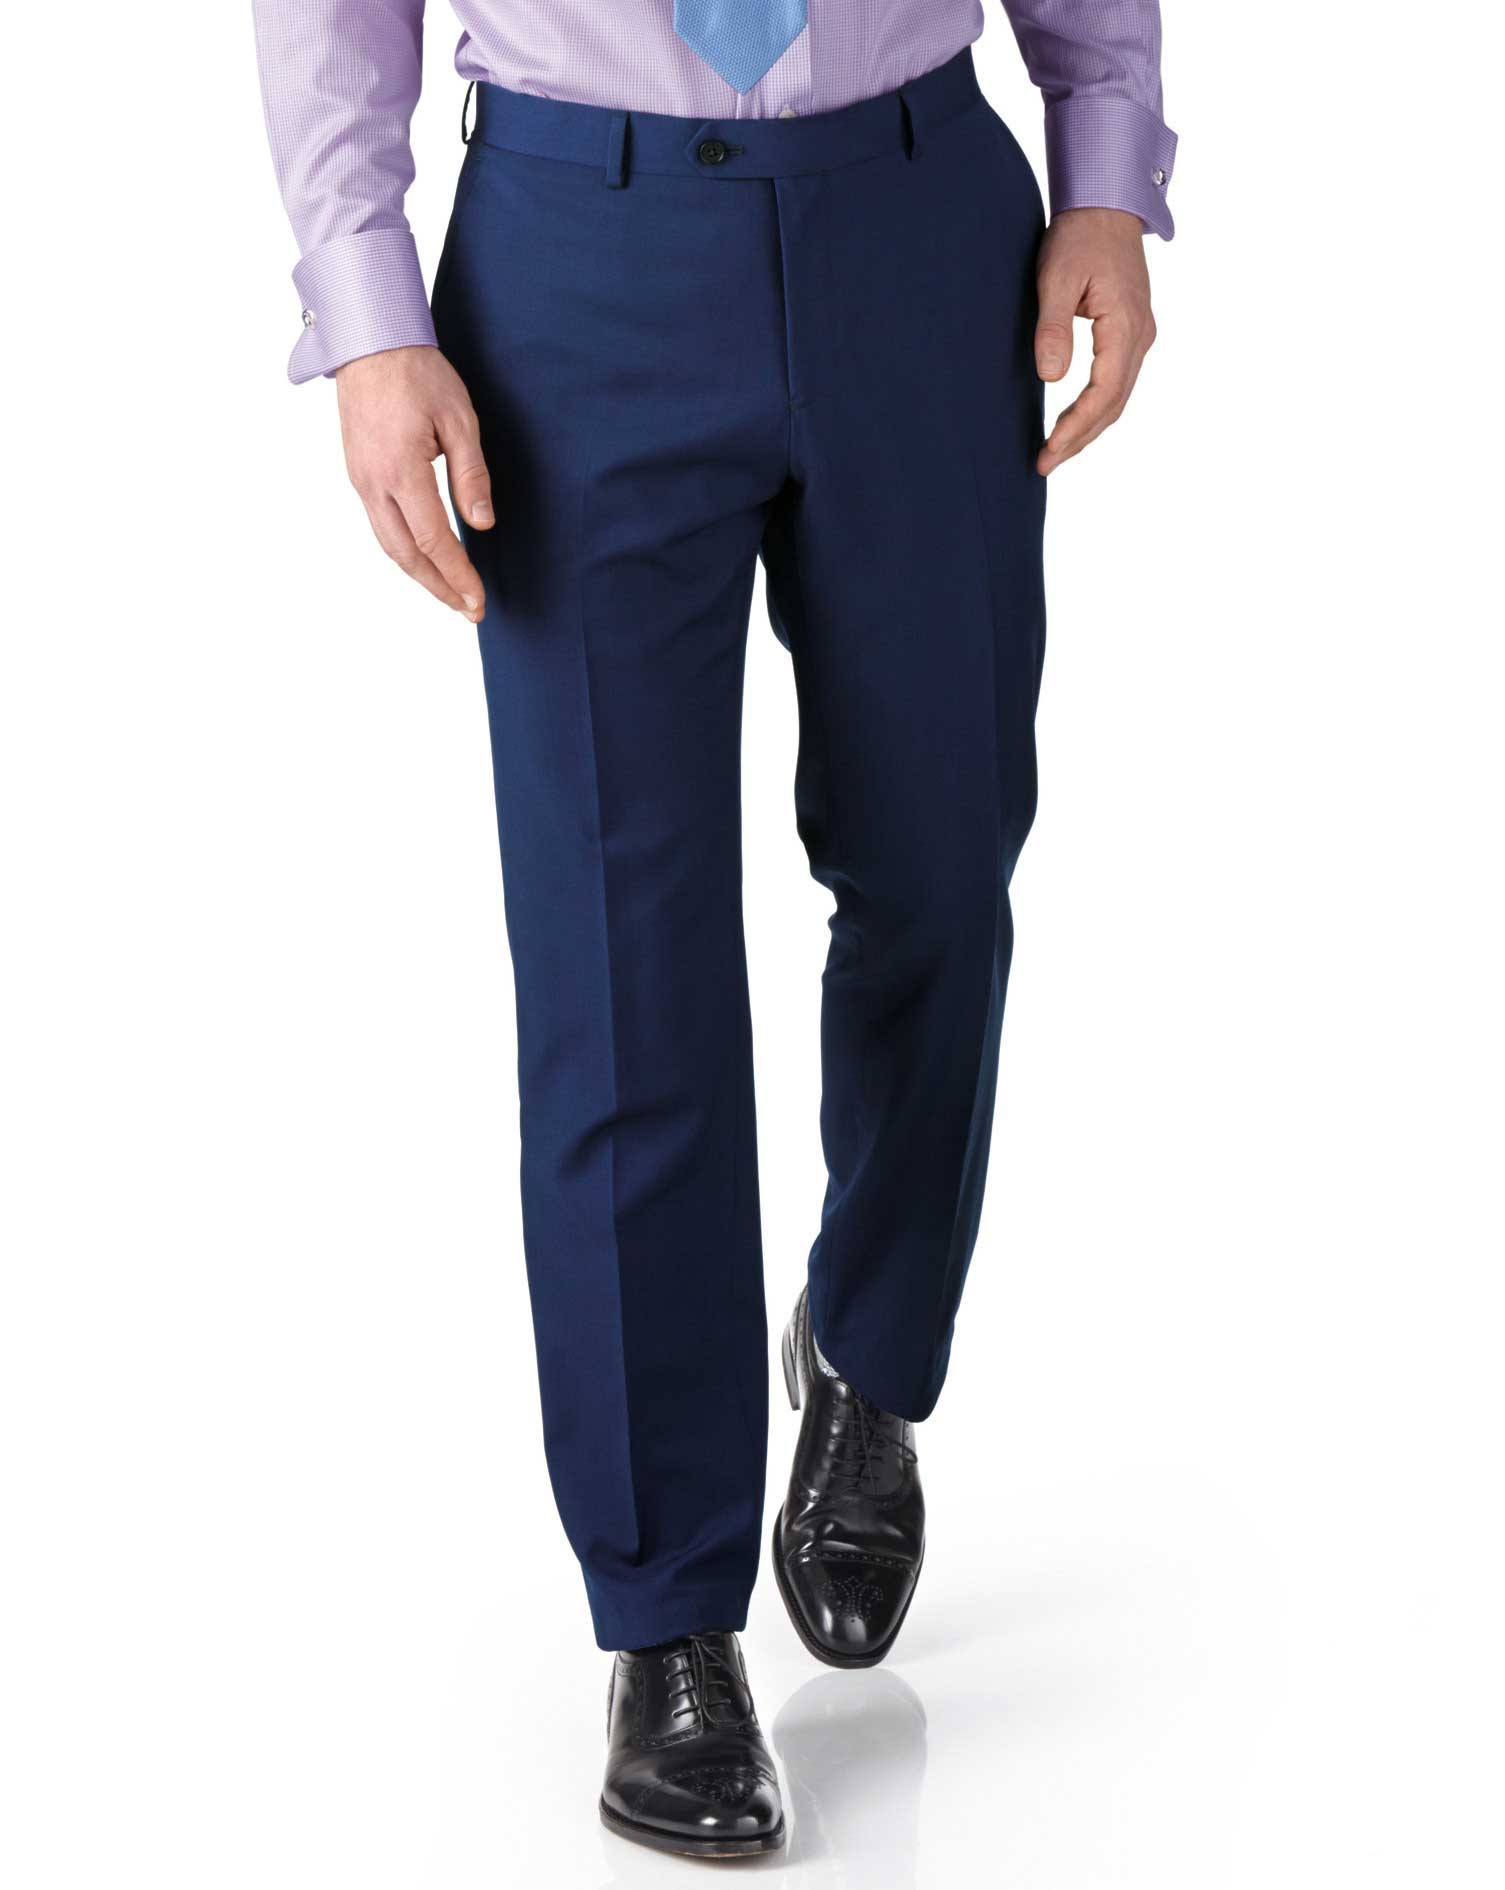 Royal Blue Slim Fit Twill Business Suit Trousers Size W42 L38 by Charles Tyrwhitt